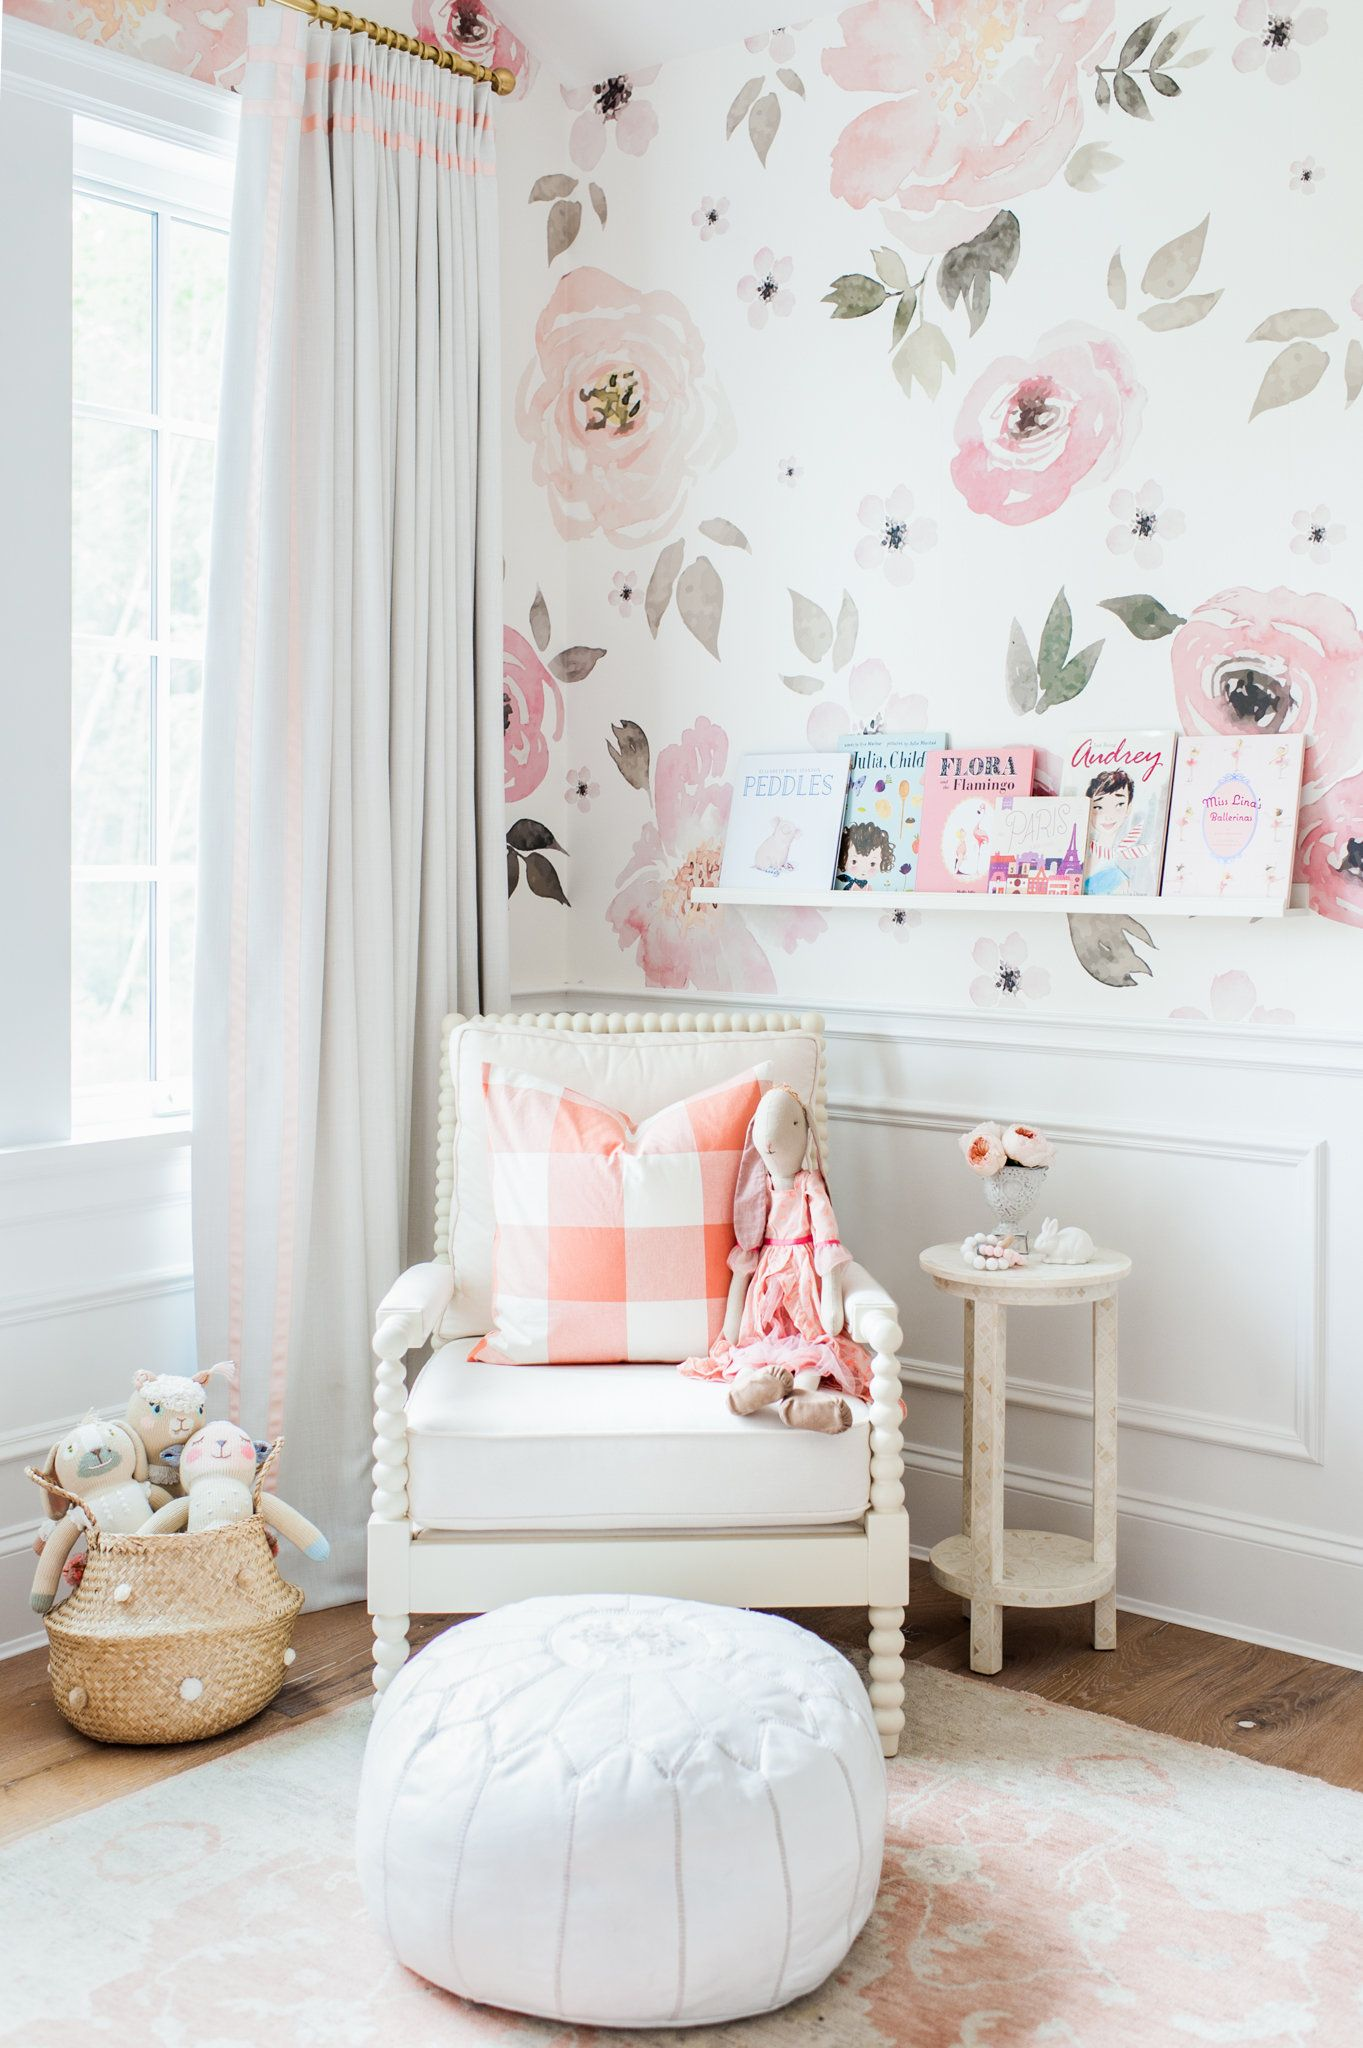 25 Sweet Reading Nook Ideas for Girls | rooms- 4u | Kids bedroom ...